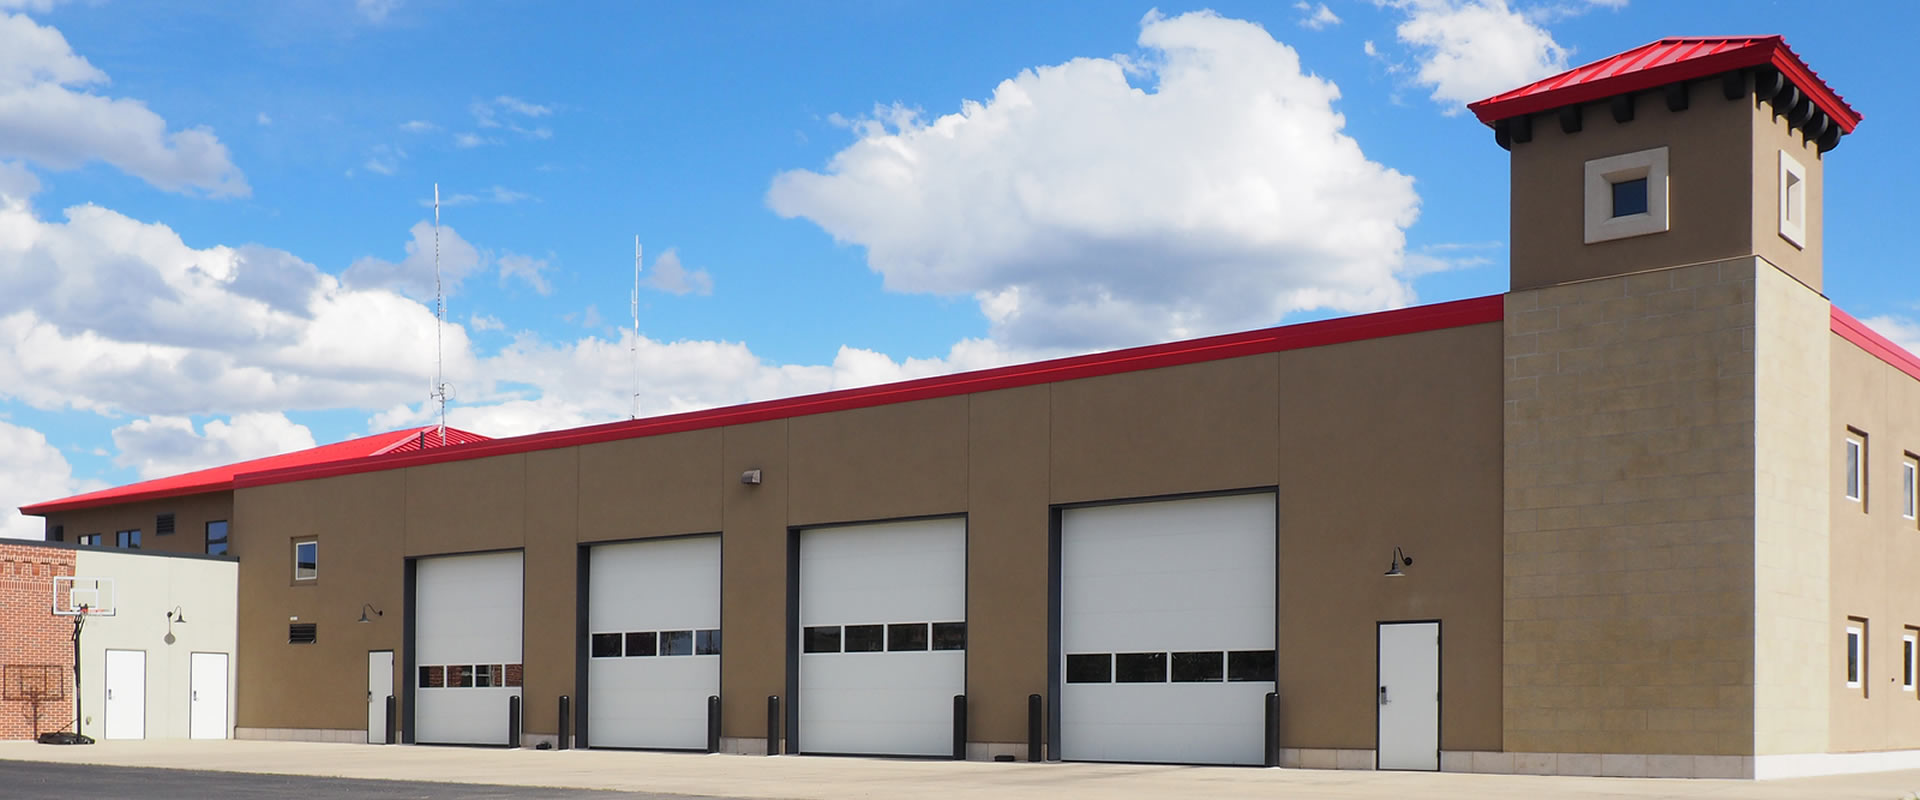 How to Choose a Commercial Garage Door?